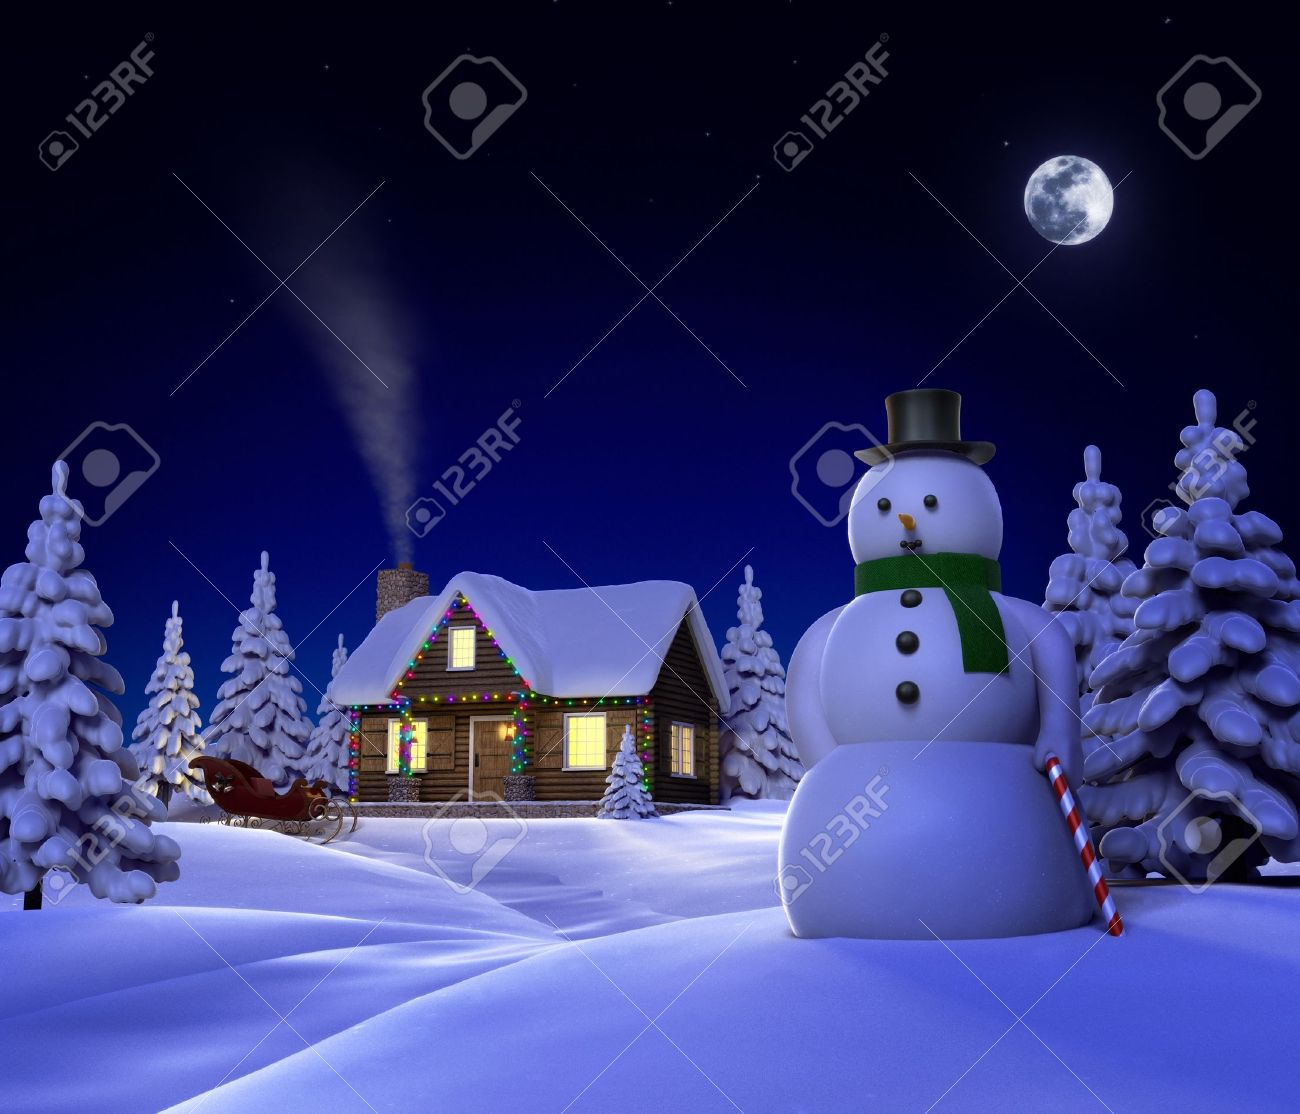 A Christmas Themed Snow Cene Showing Snowman, Cabin And Snow ...